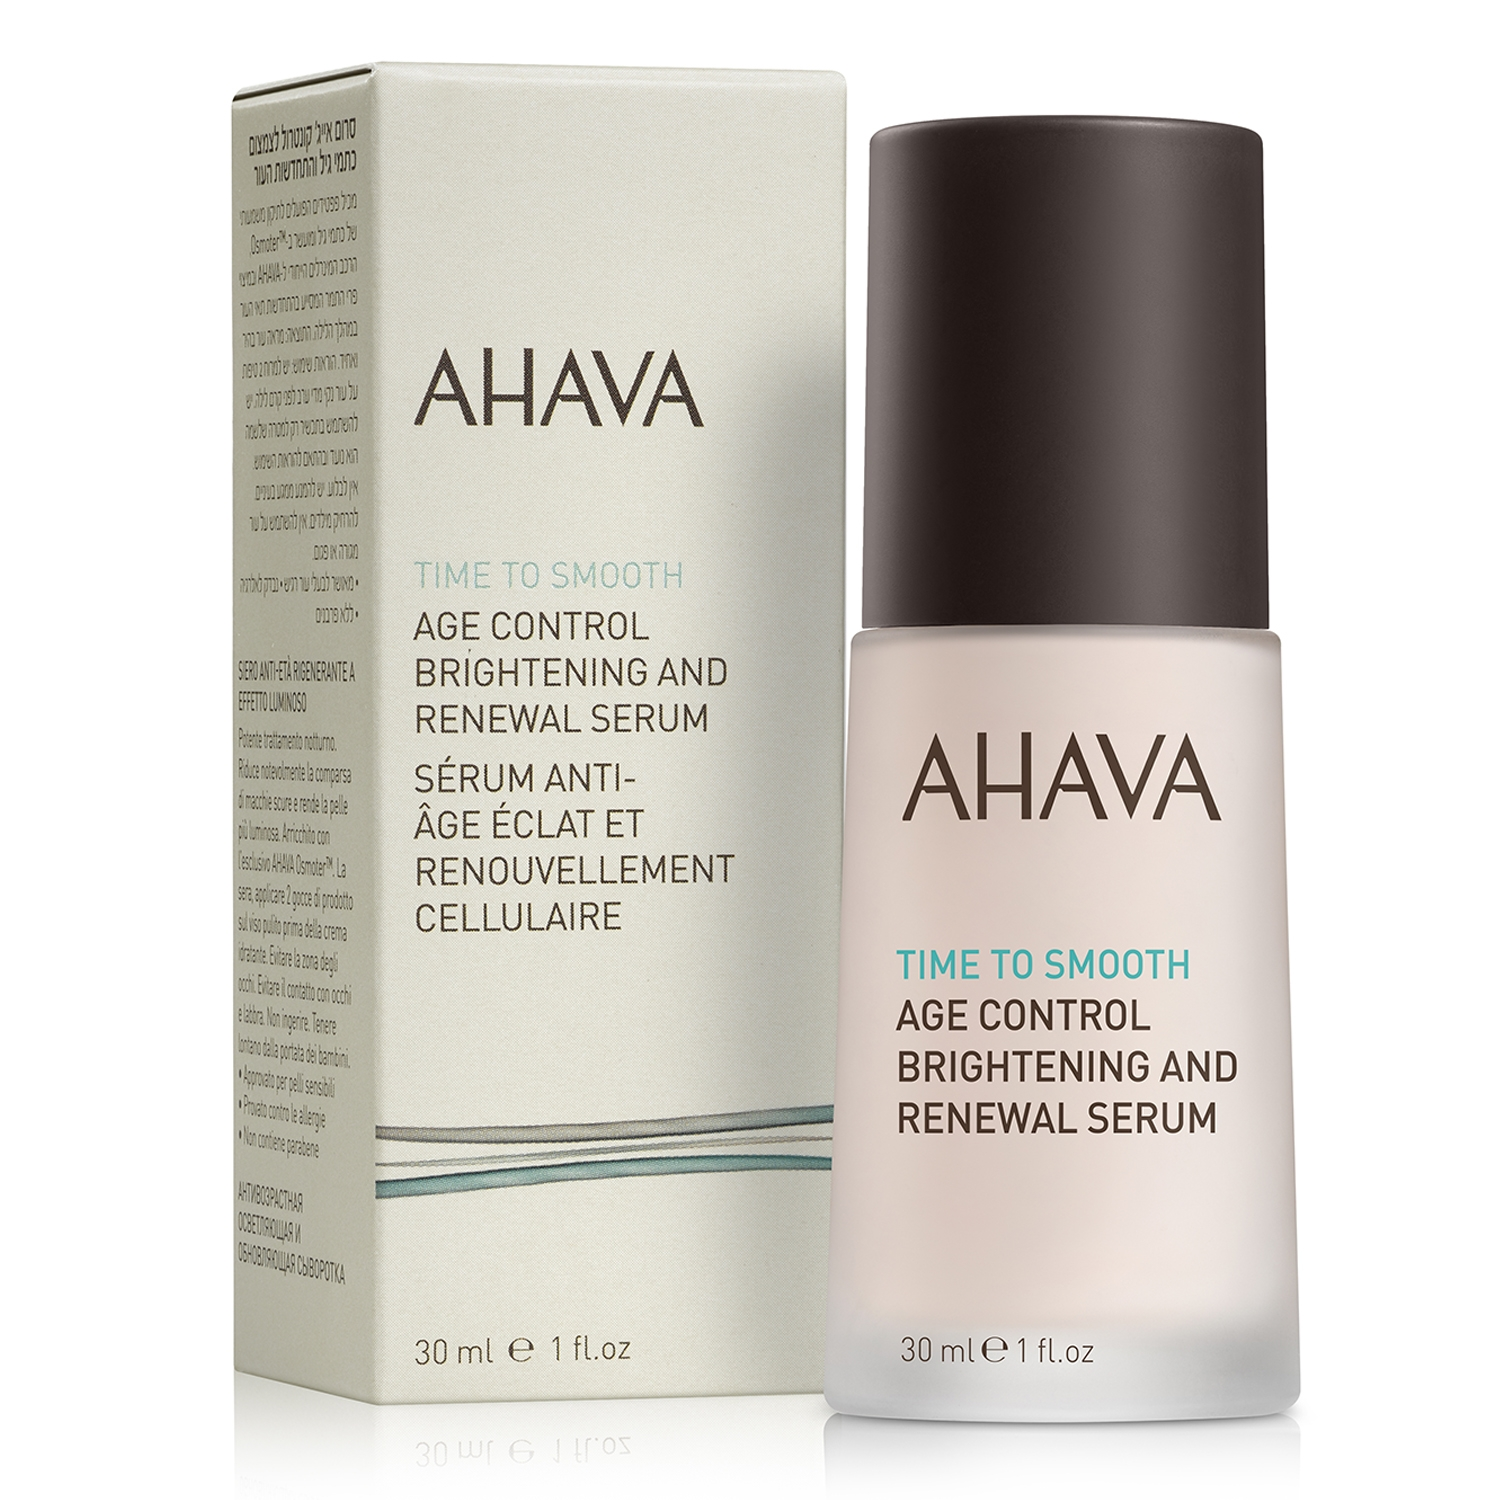 Age control Brightening & Renewal Serum 30 ml